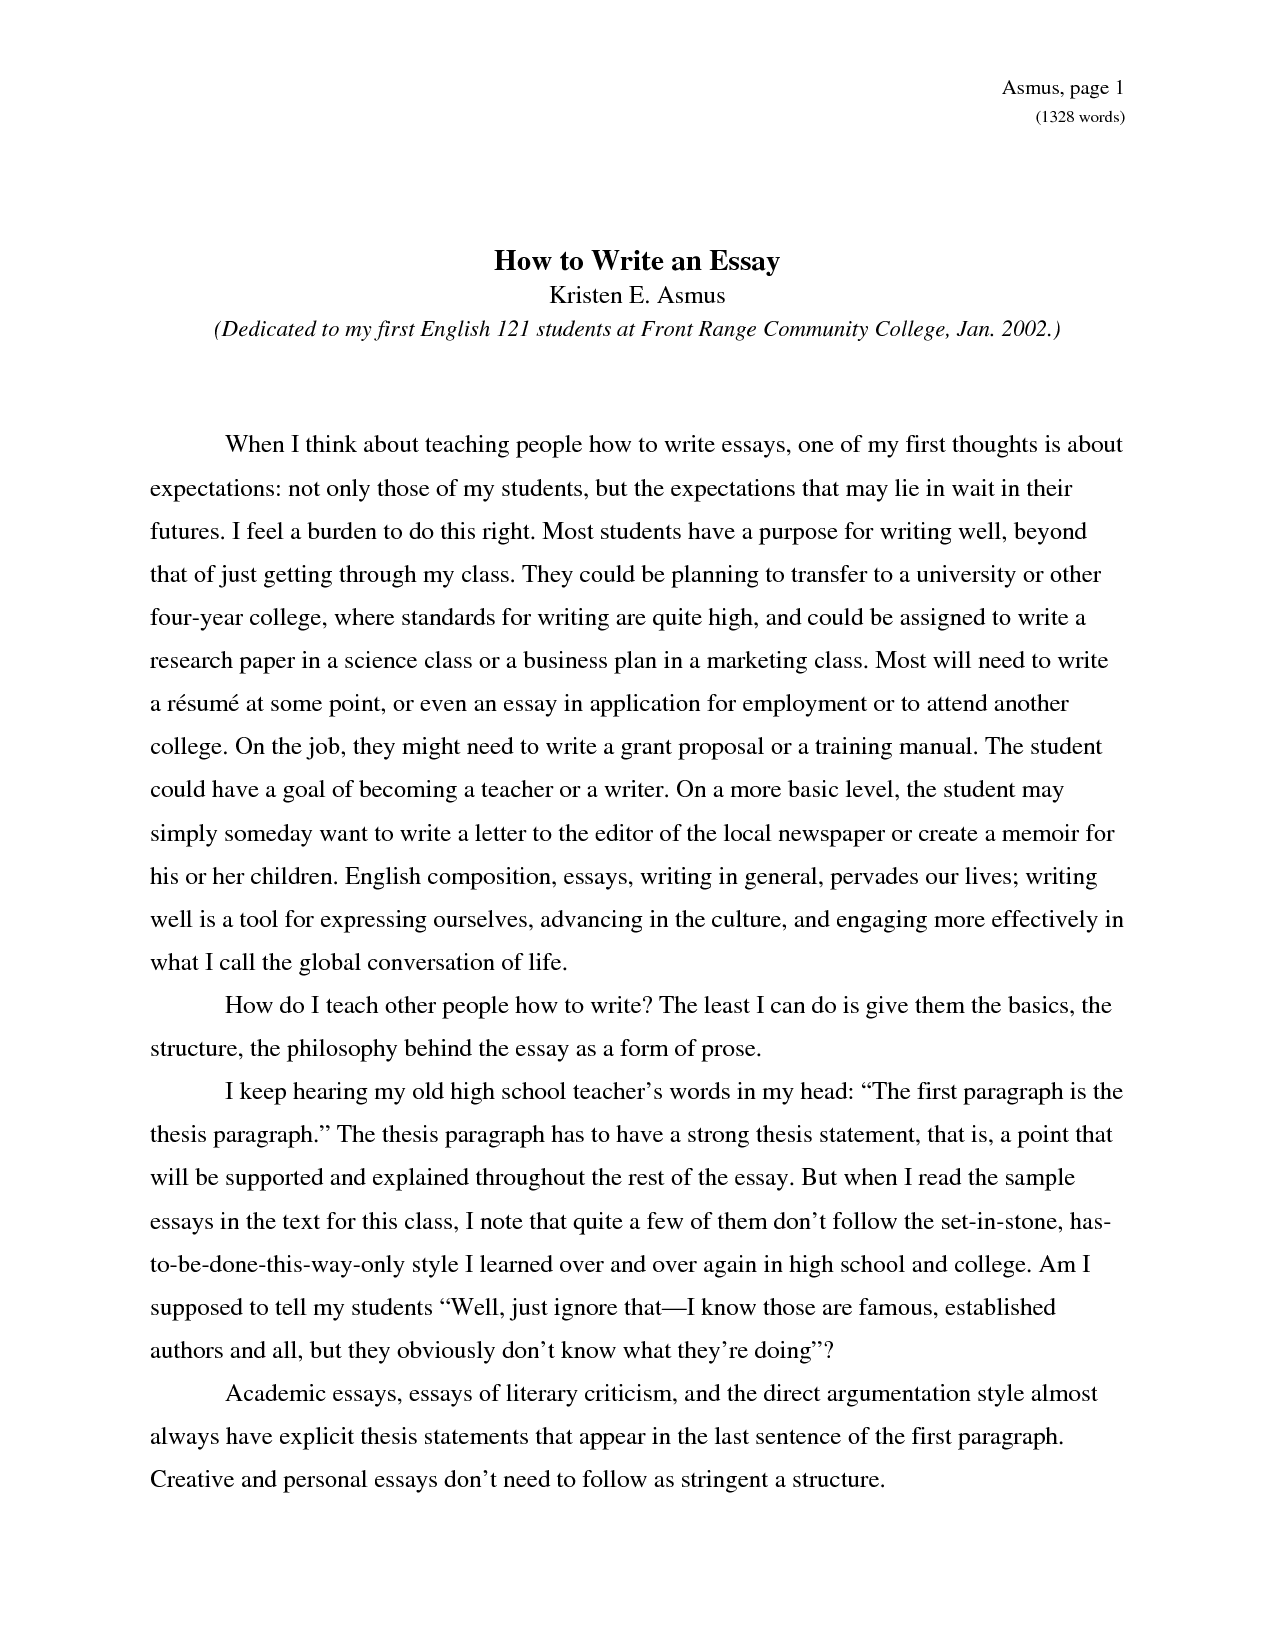 How to write an essay for college english